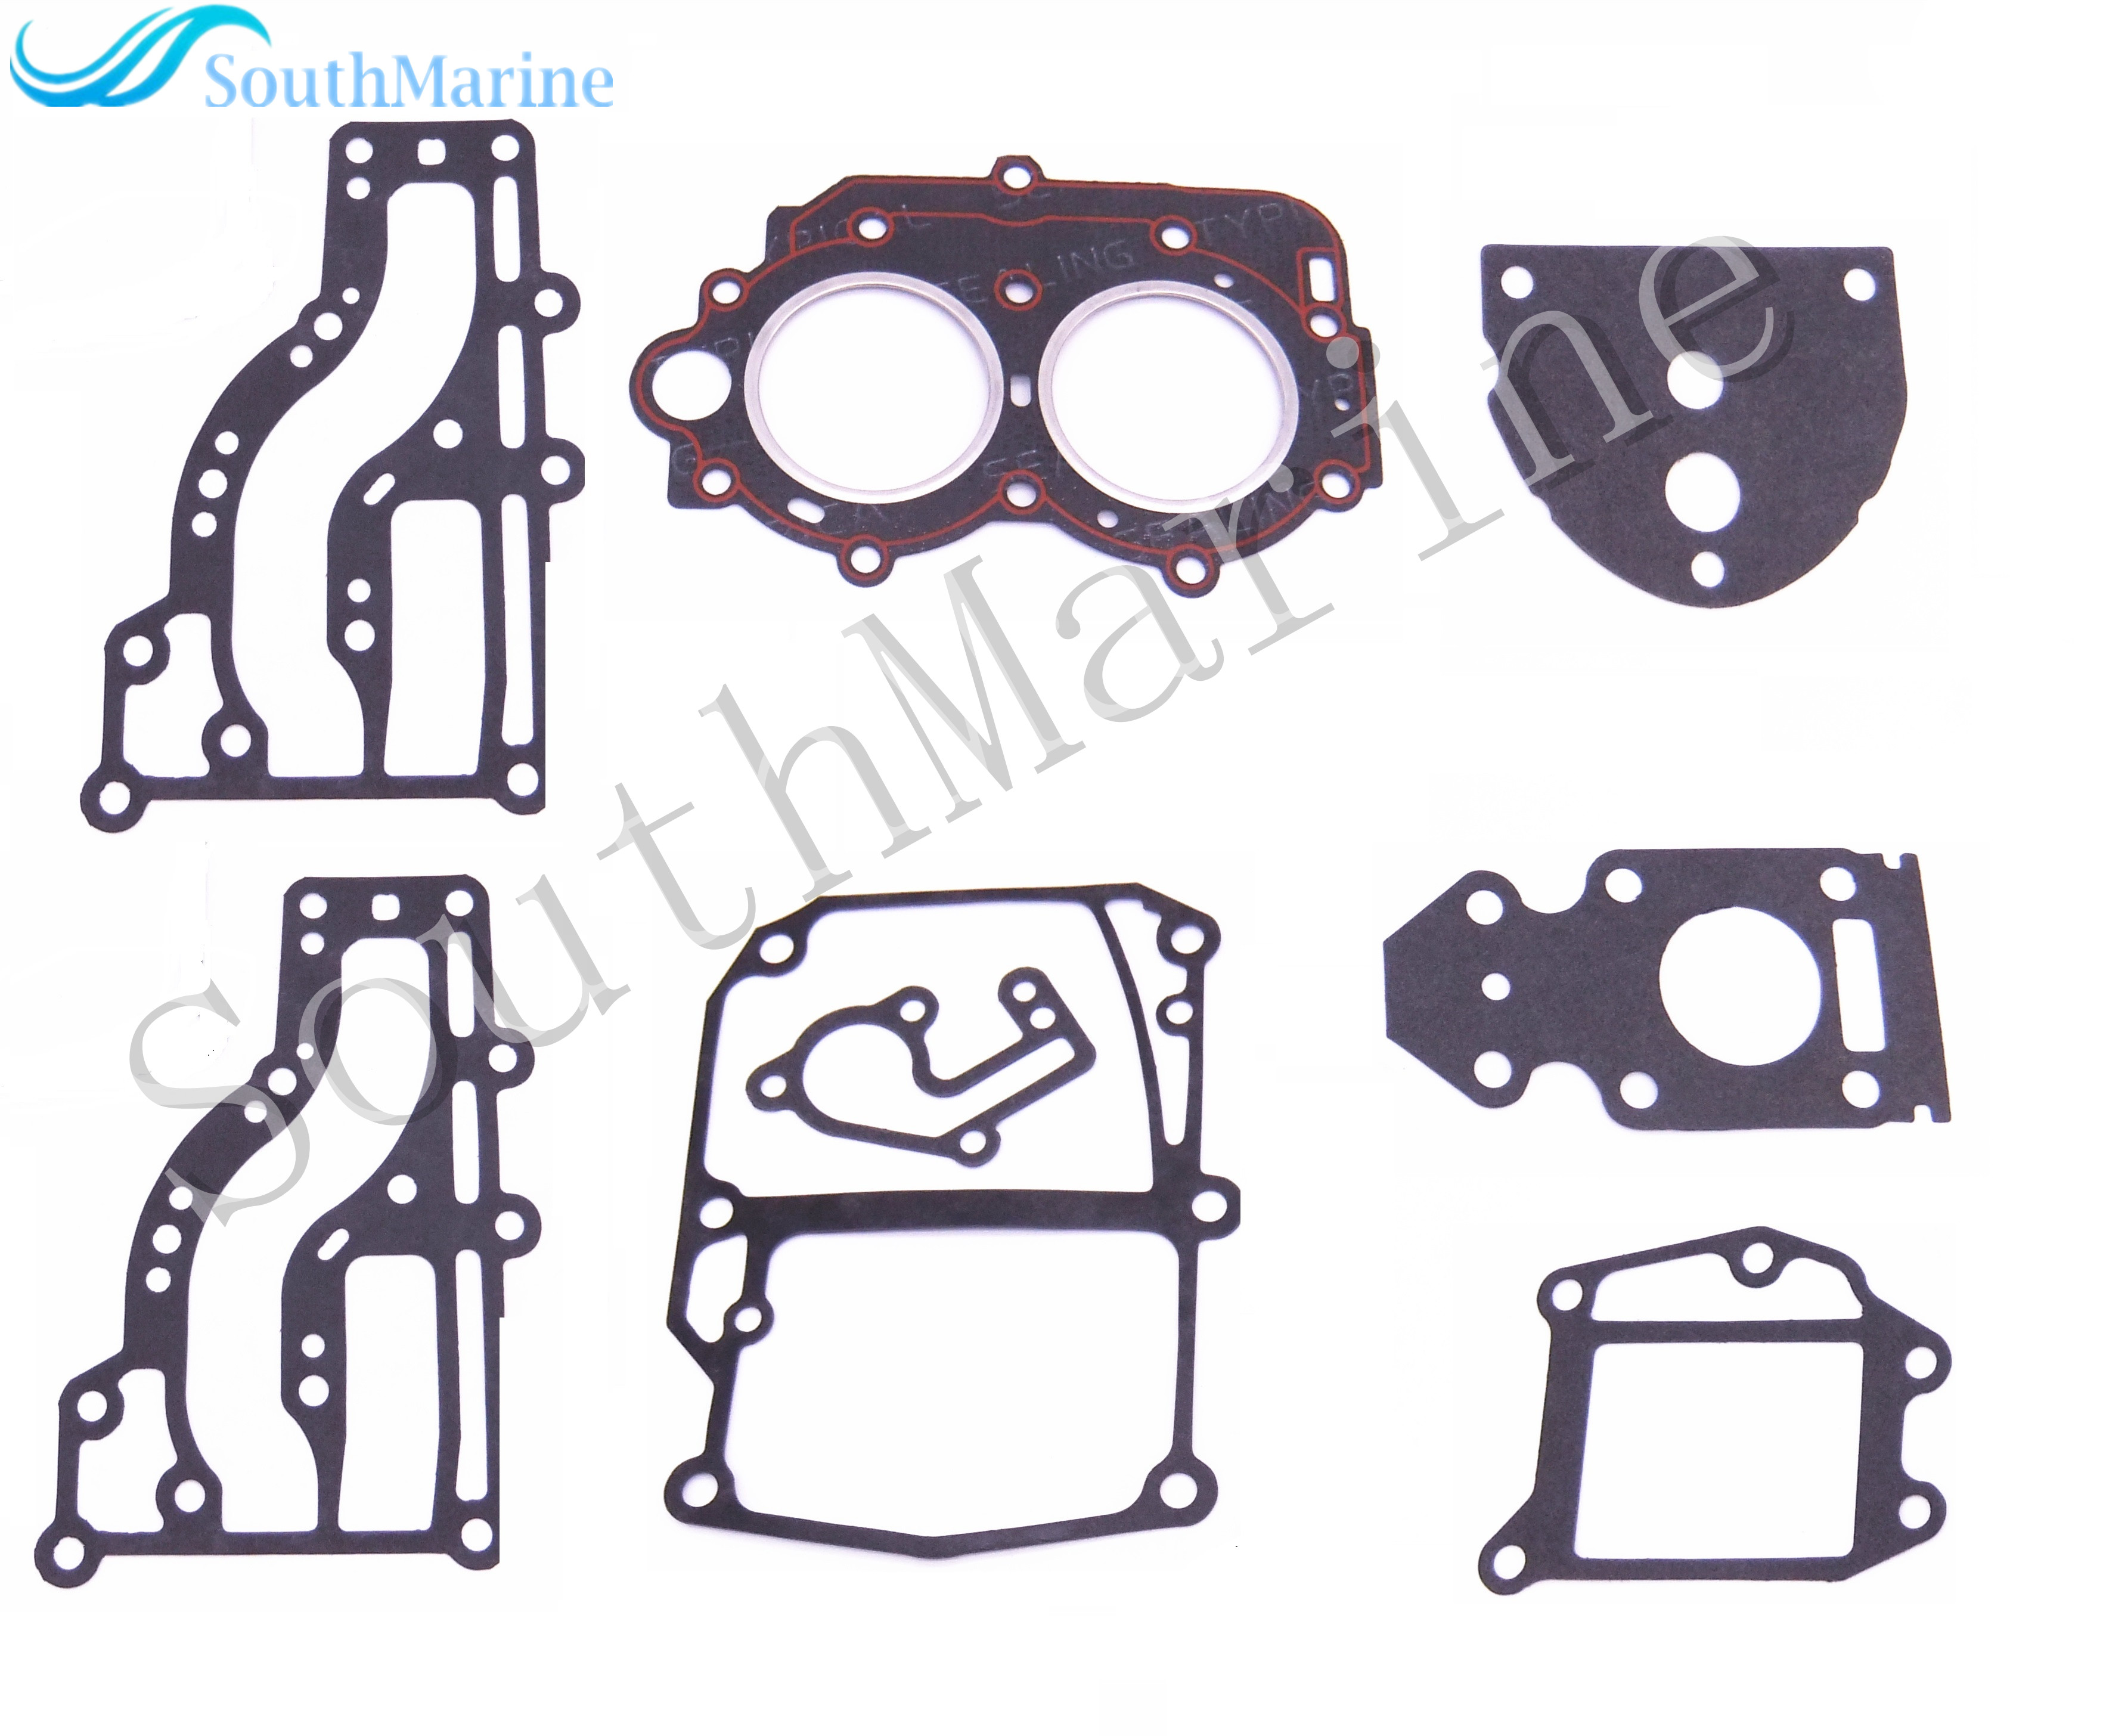 Boat Engines Complete Head Power Seal Gasket Kit for 15F Hidea 9.9F Outboard Motors Free Shipping